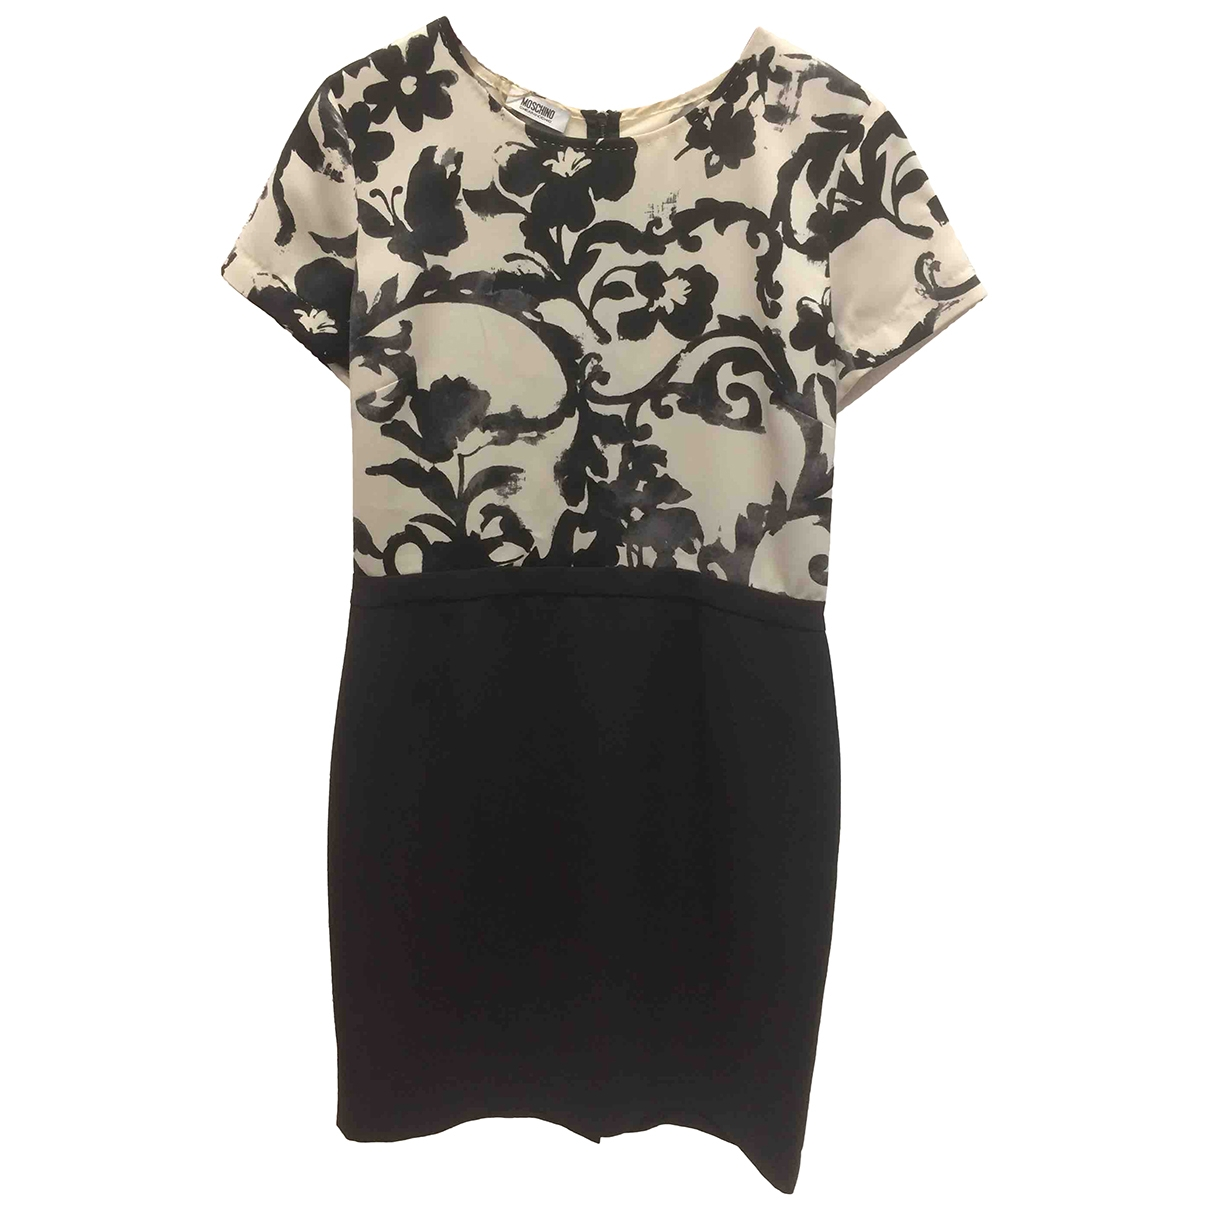 Moschino Cheap And Chic \N Kleid in  Schwarz Polyester